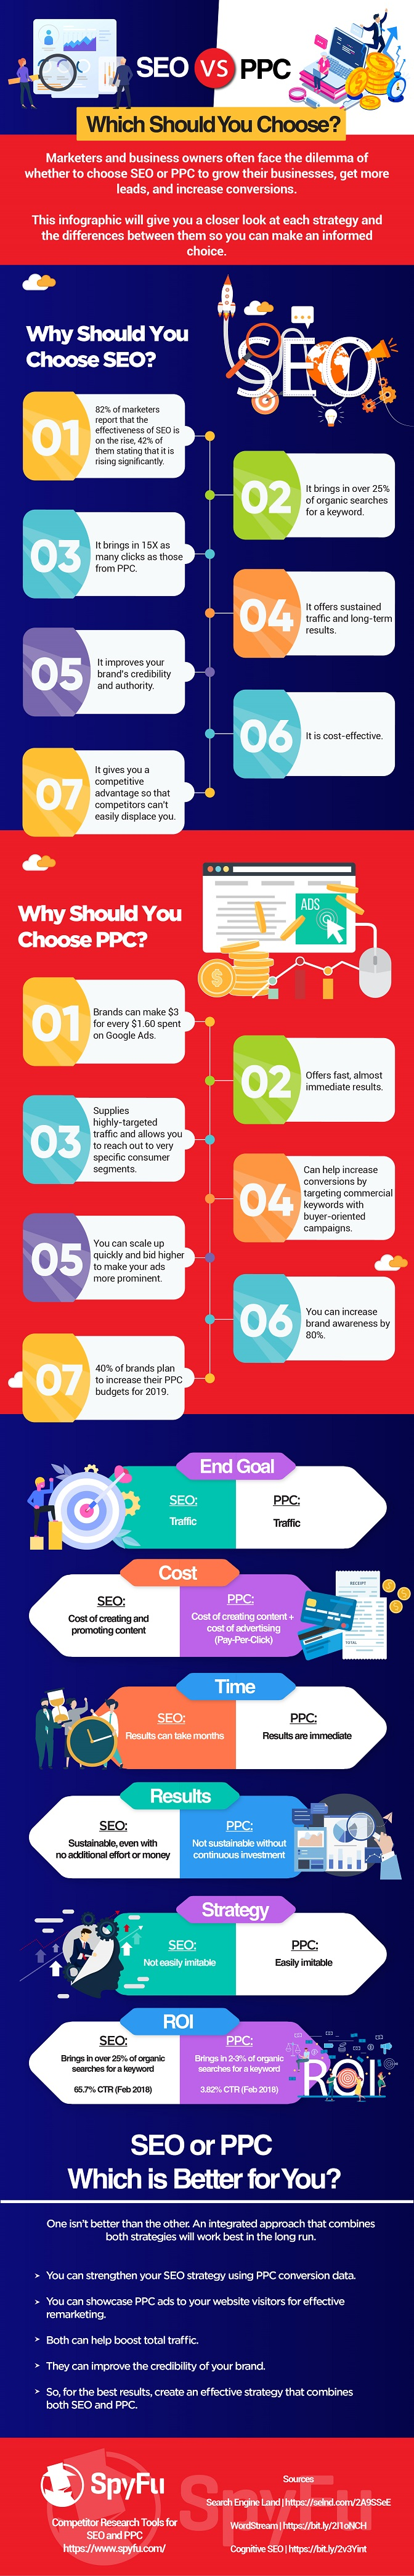 Infographic SEO vs PPC Which Should You Choose by SpyFu